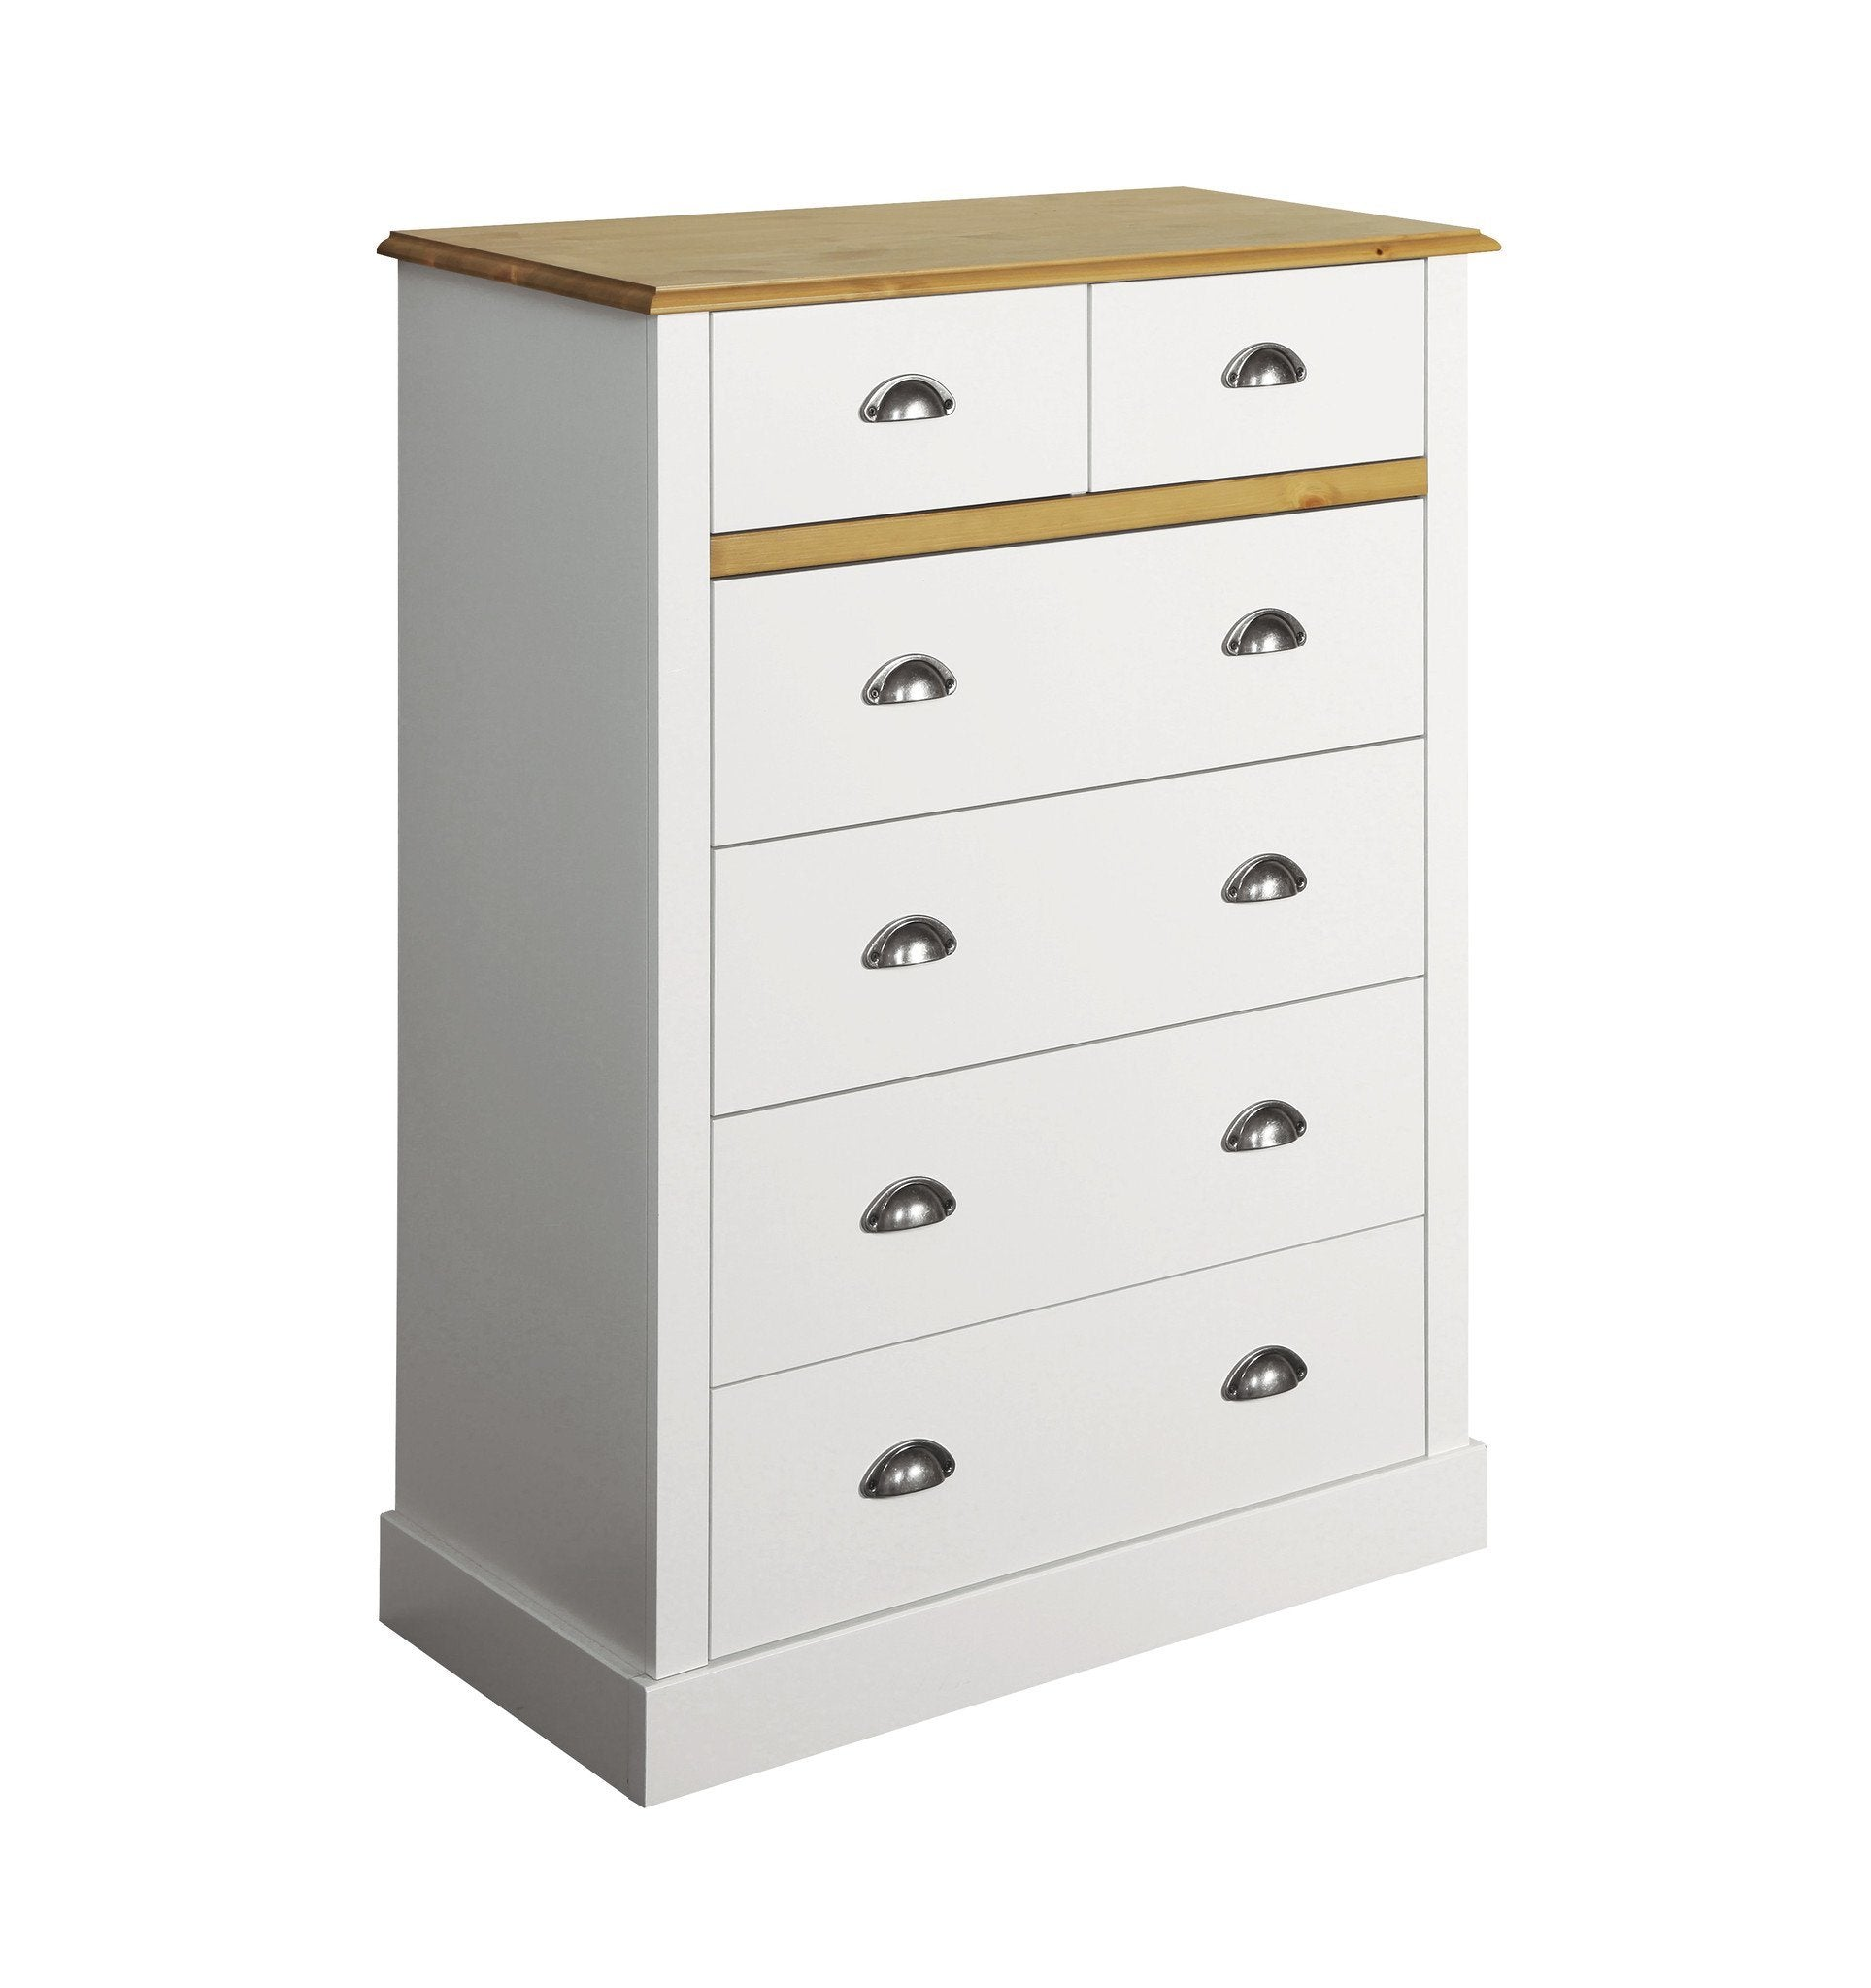 drawer hayneedle four line cfm product inuse chest county drawers sauder